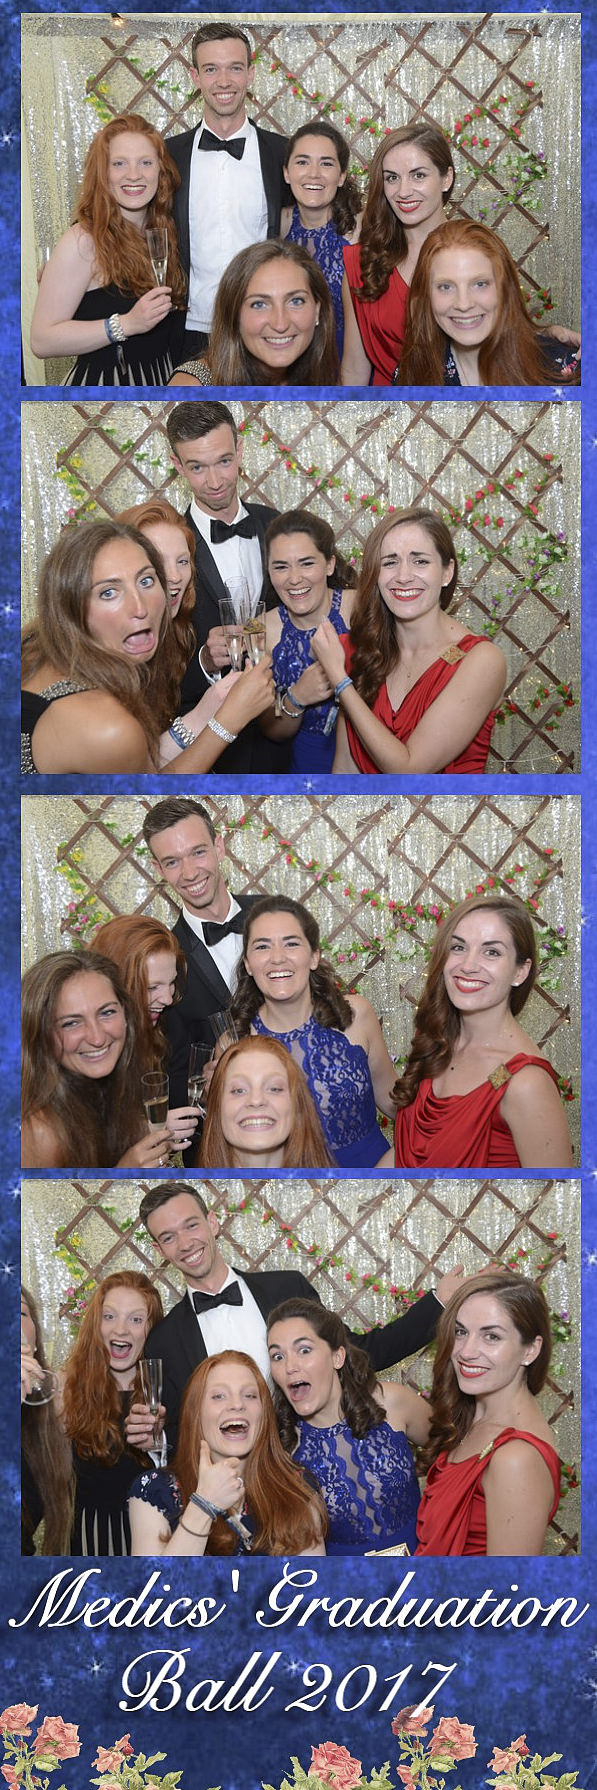 Medics Graduation Ball 2017 Medics Ball 2017 - TheSelfieLab.co.ukDS185457.jpg